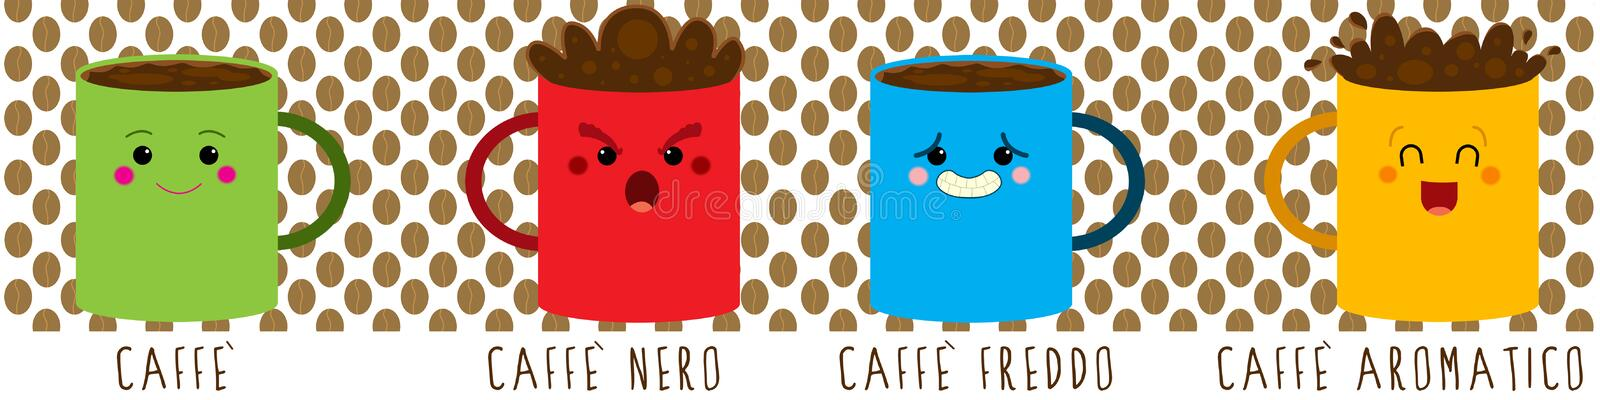 Download Coffee mood stock illustration. Image of brown, cappuccino - 28802275